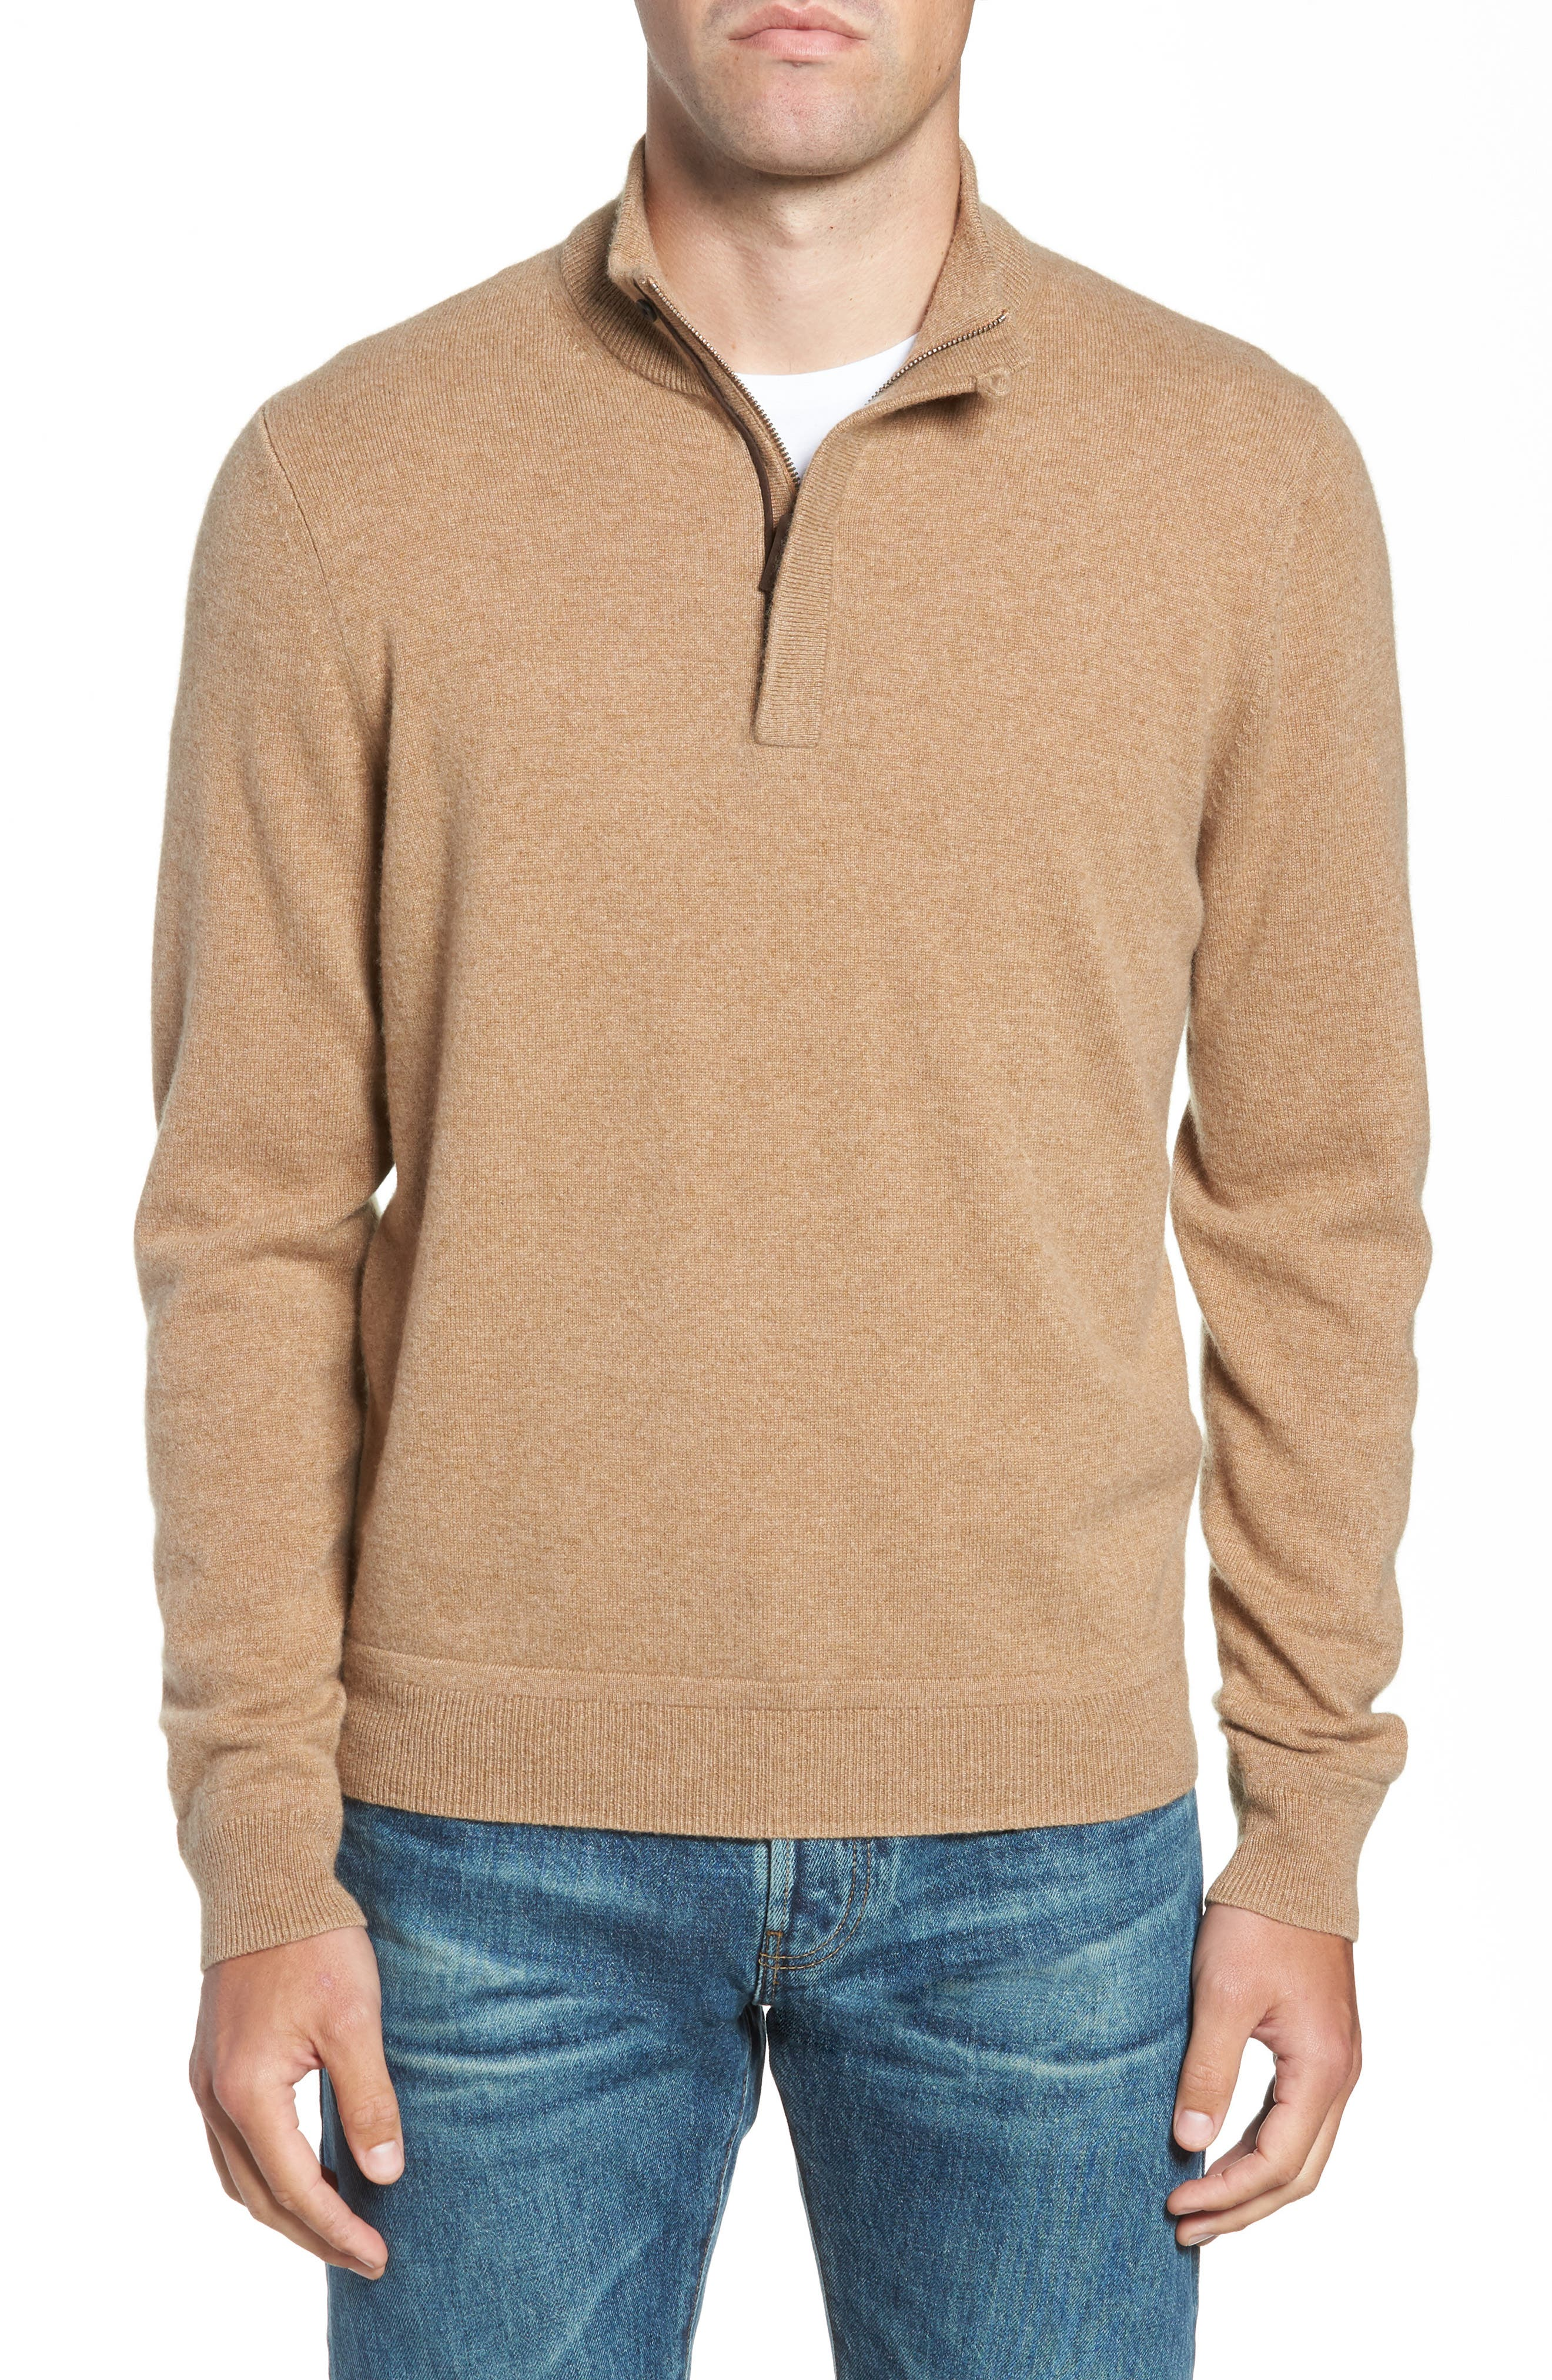 Regular Fit Quarter Zip Cashmere Sweater,                         Main,                         color, BROWN BEAR